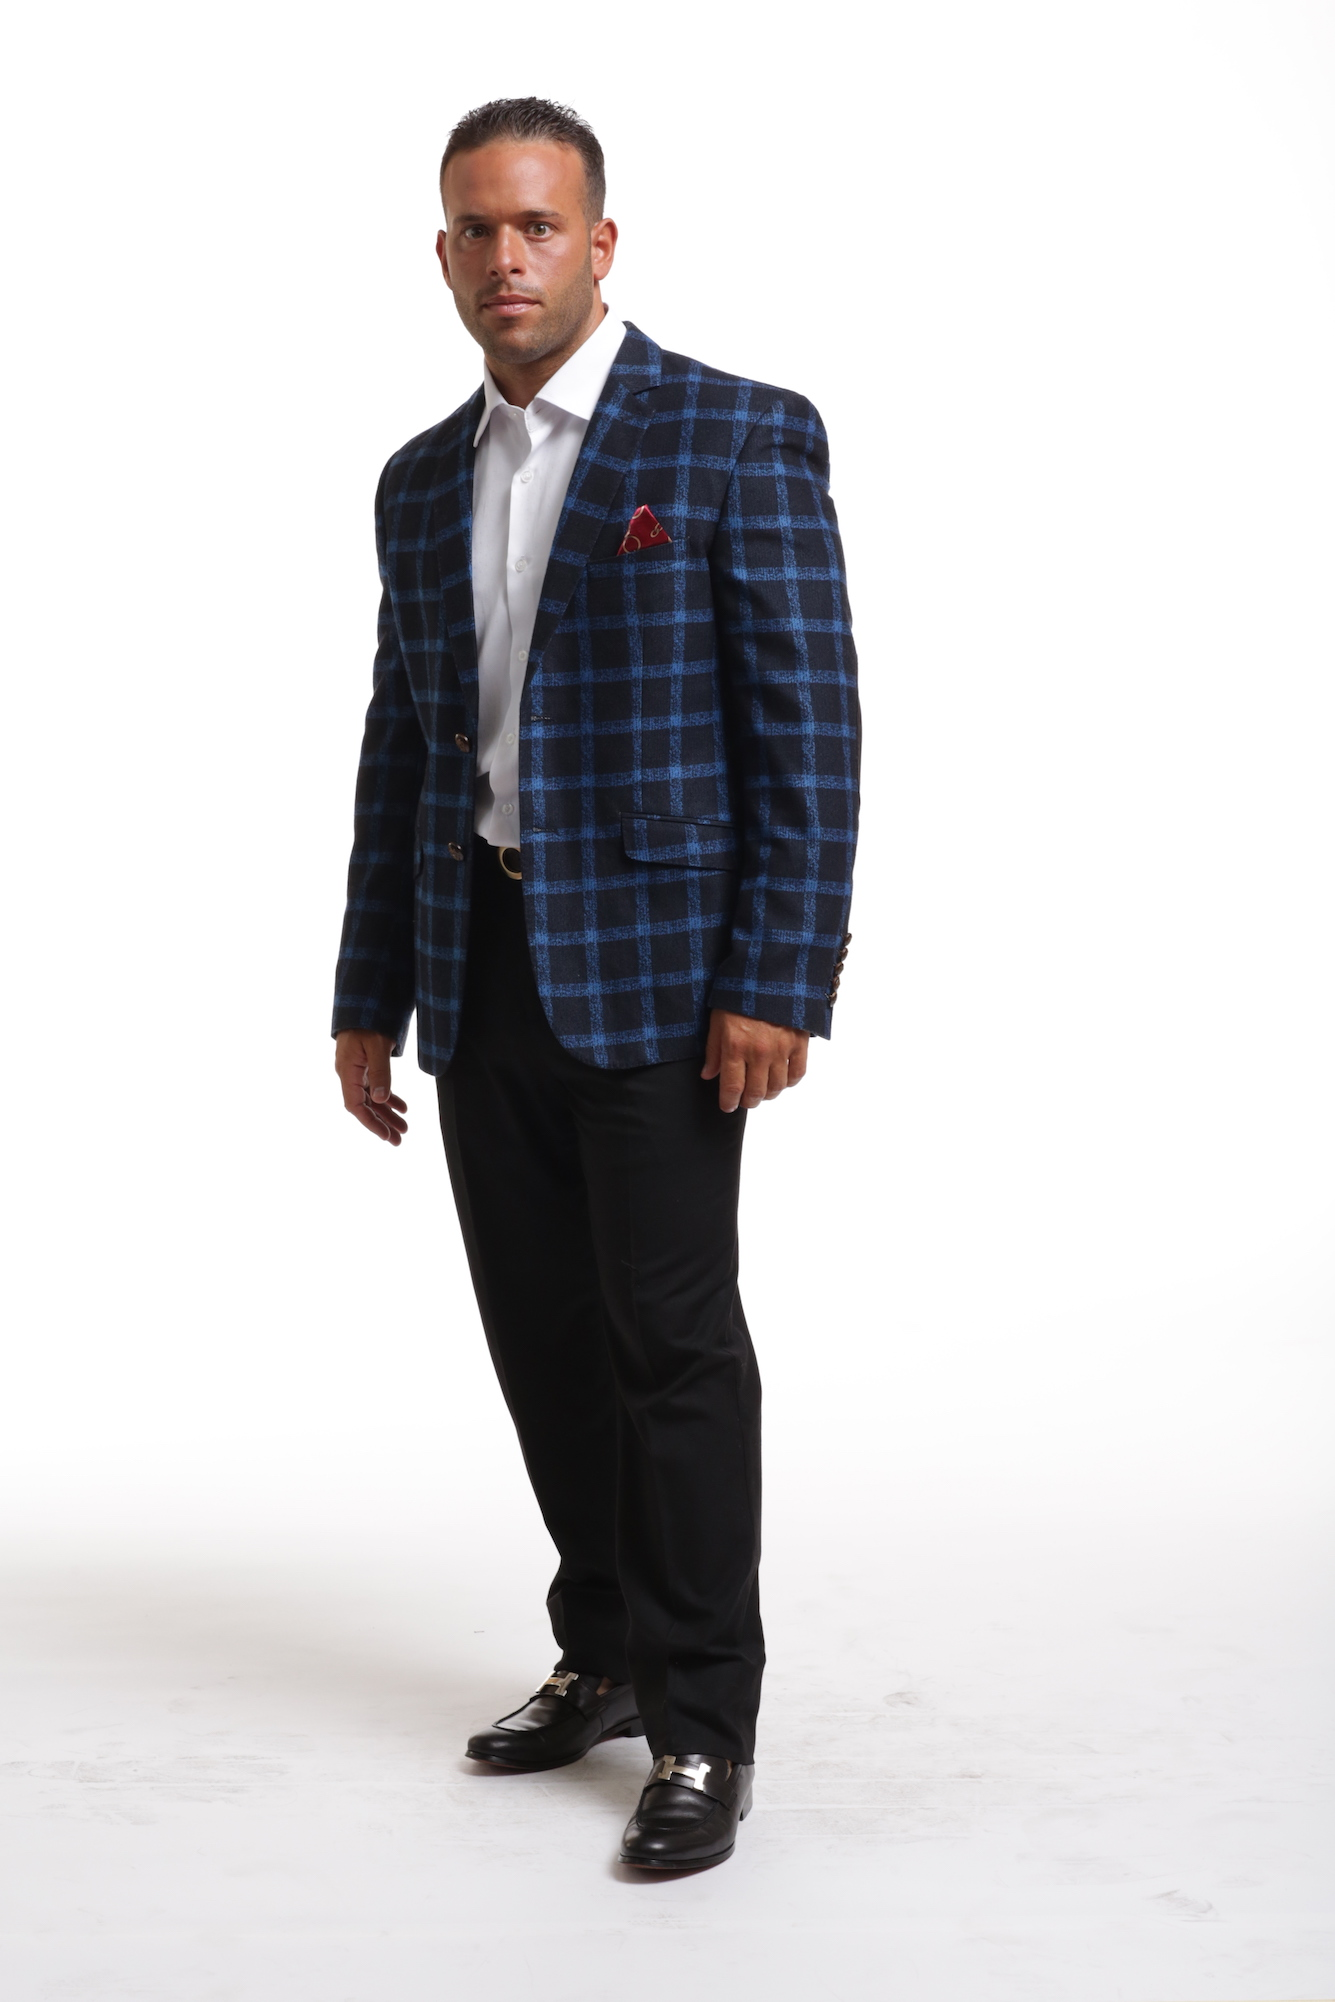 Wild Royal Plaid Men's Blazer/Jacket CEBBW1815M